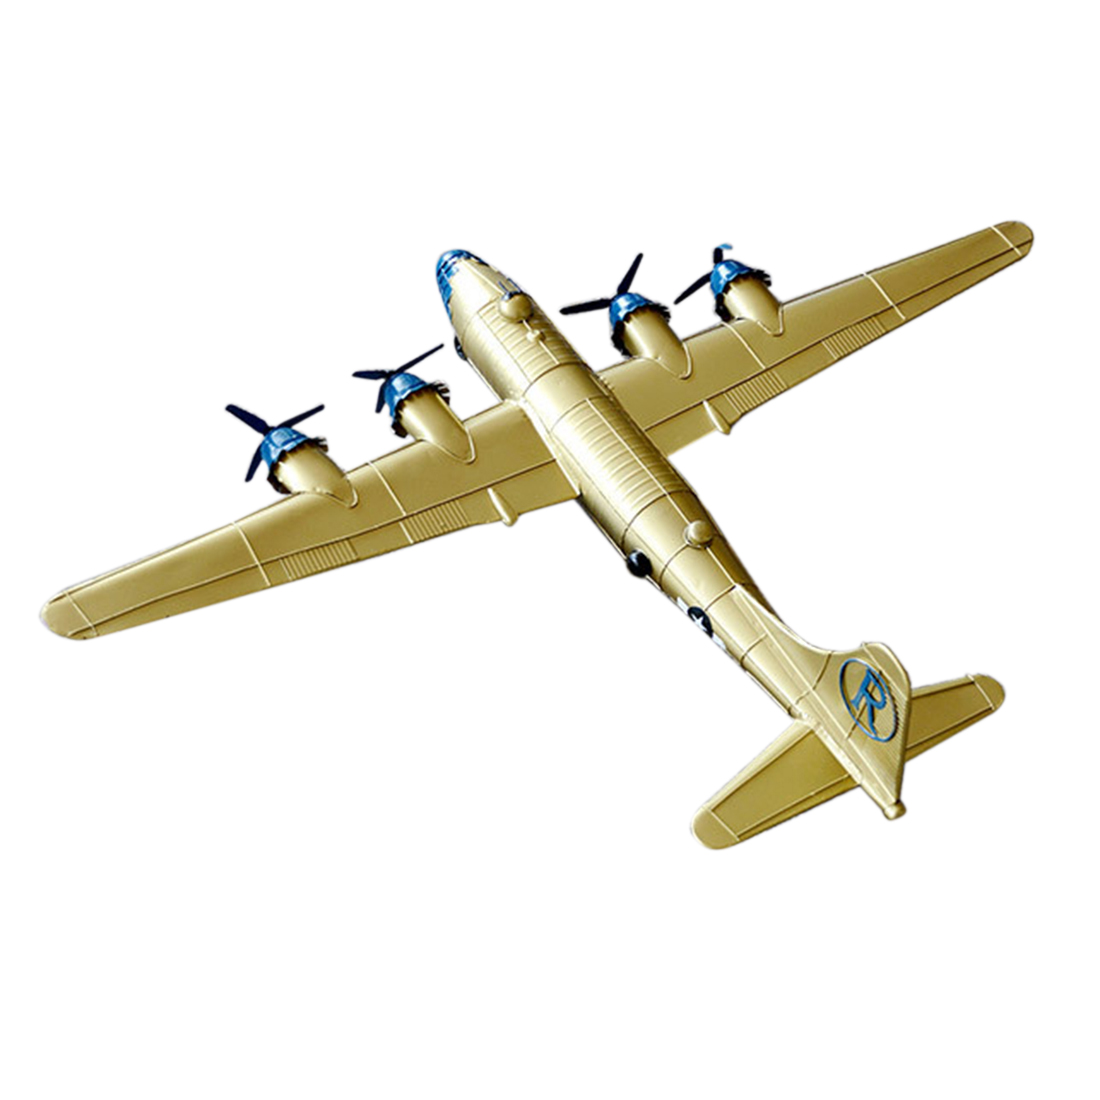 90 X 65 X 15cm Static Iron Art Aircraft Model Airplane Ornament Home Decor Decoration Accessories For Living Room - Golden Blue image